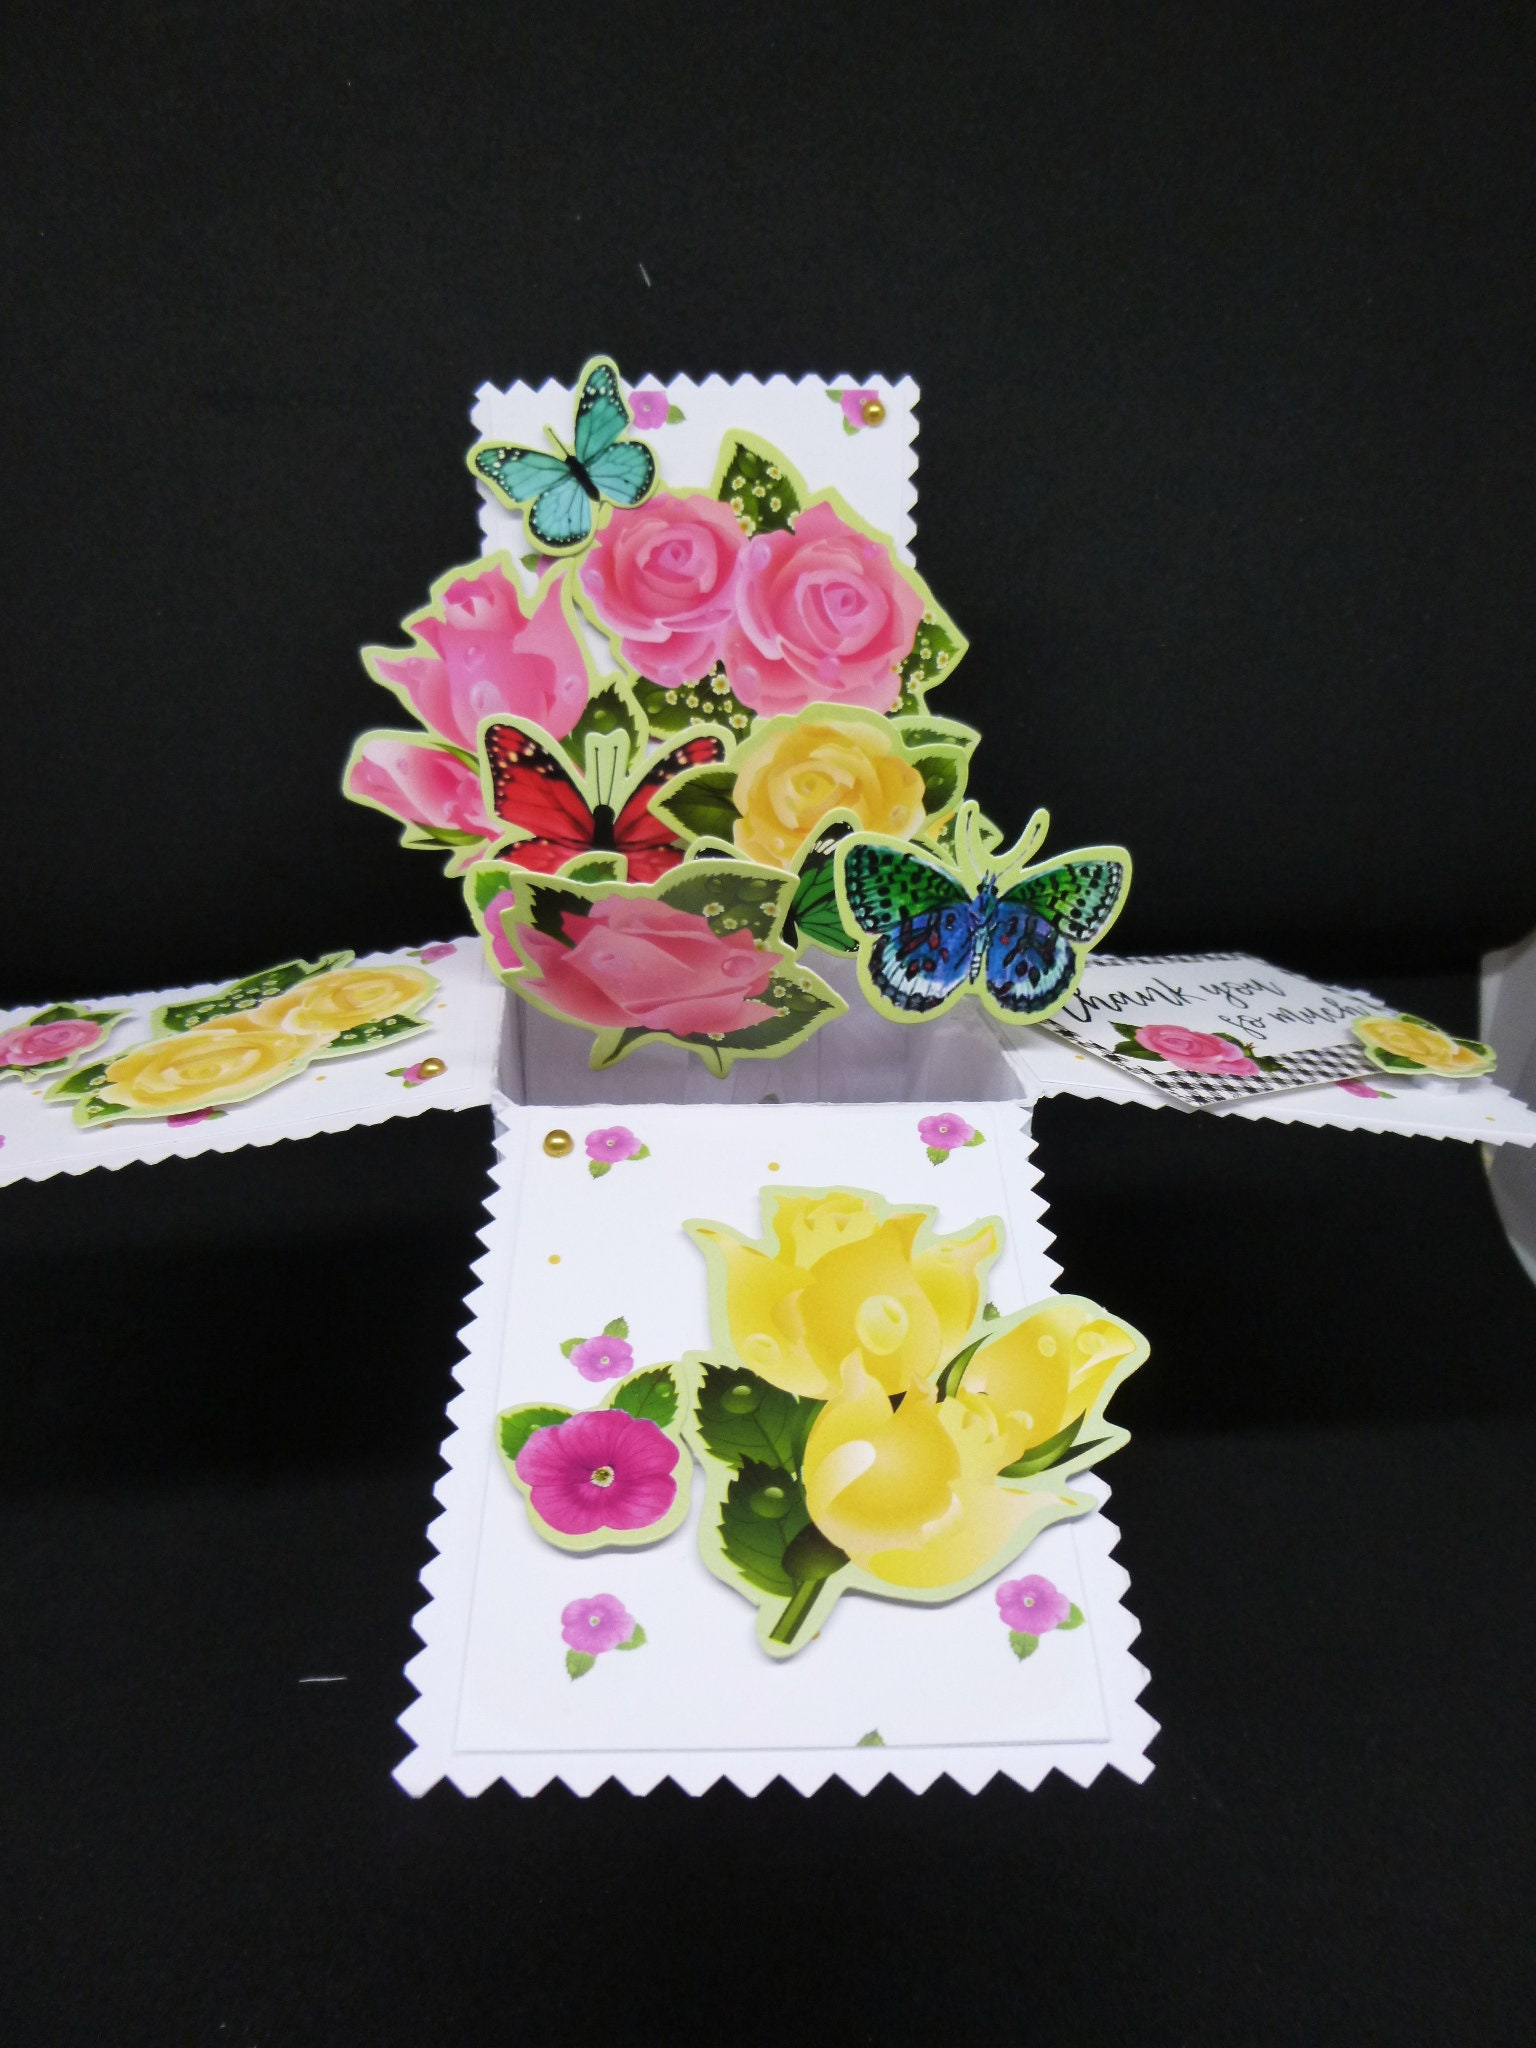 3 d pop up card floral card flowers and butterflies birthday card 3 d pop up card floral card flowers and butterflies birthday card thank you card greeting card any age female izmirmasajfo